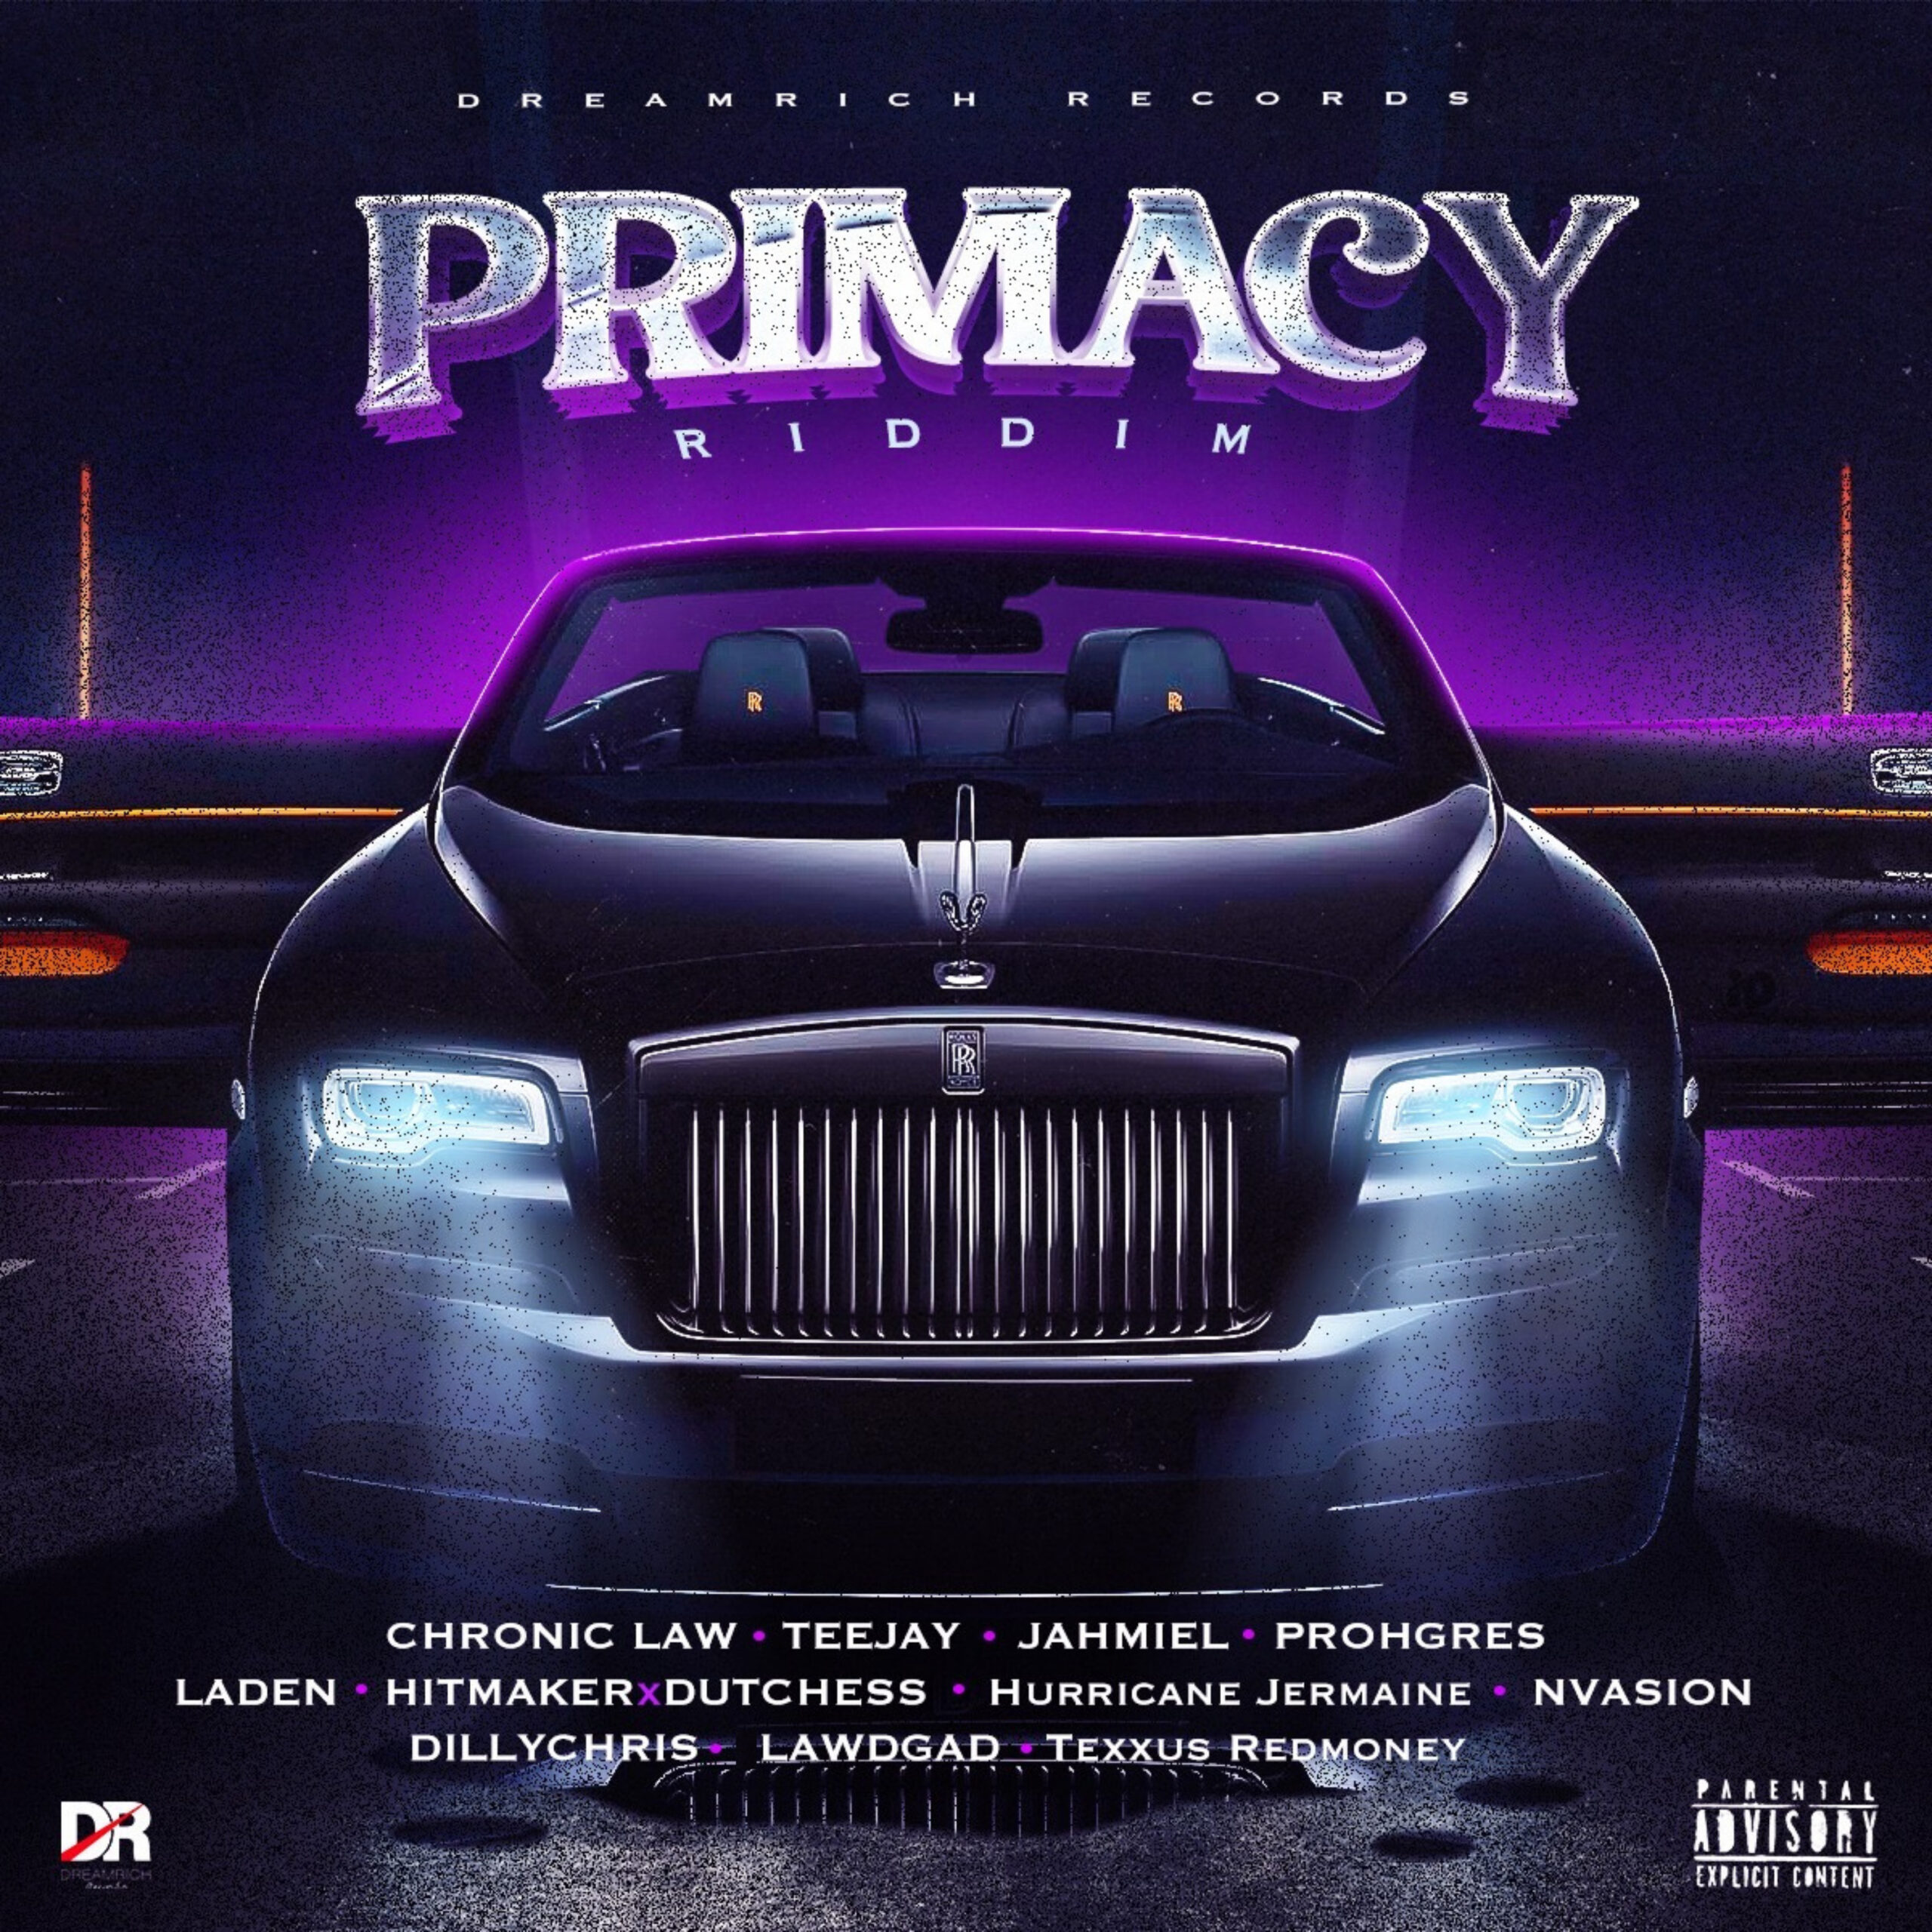 Primacy Riddim – Dreamrich Records